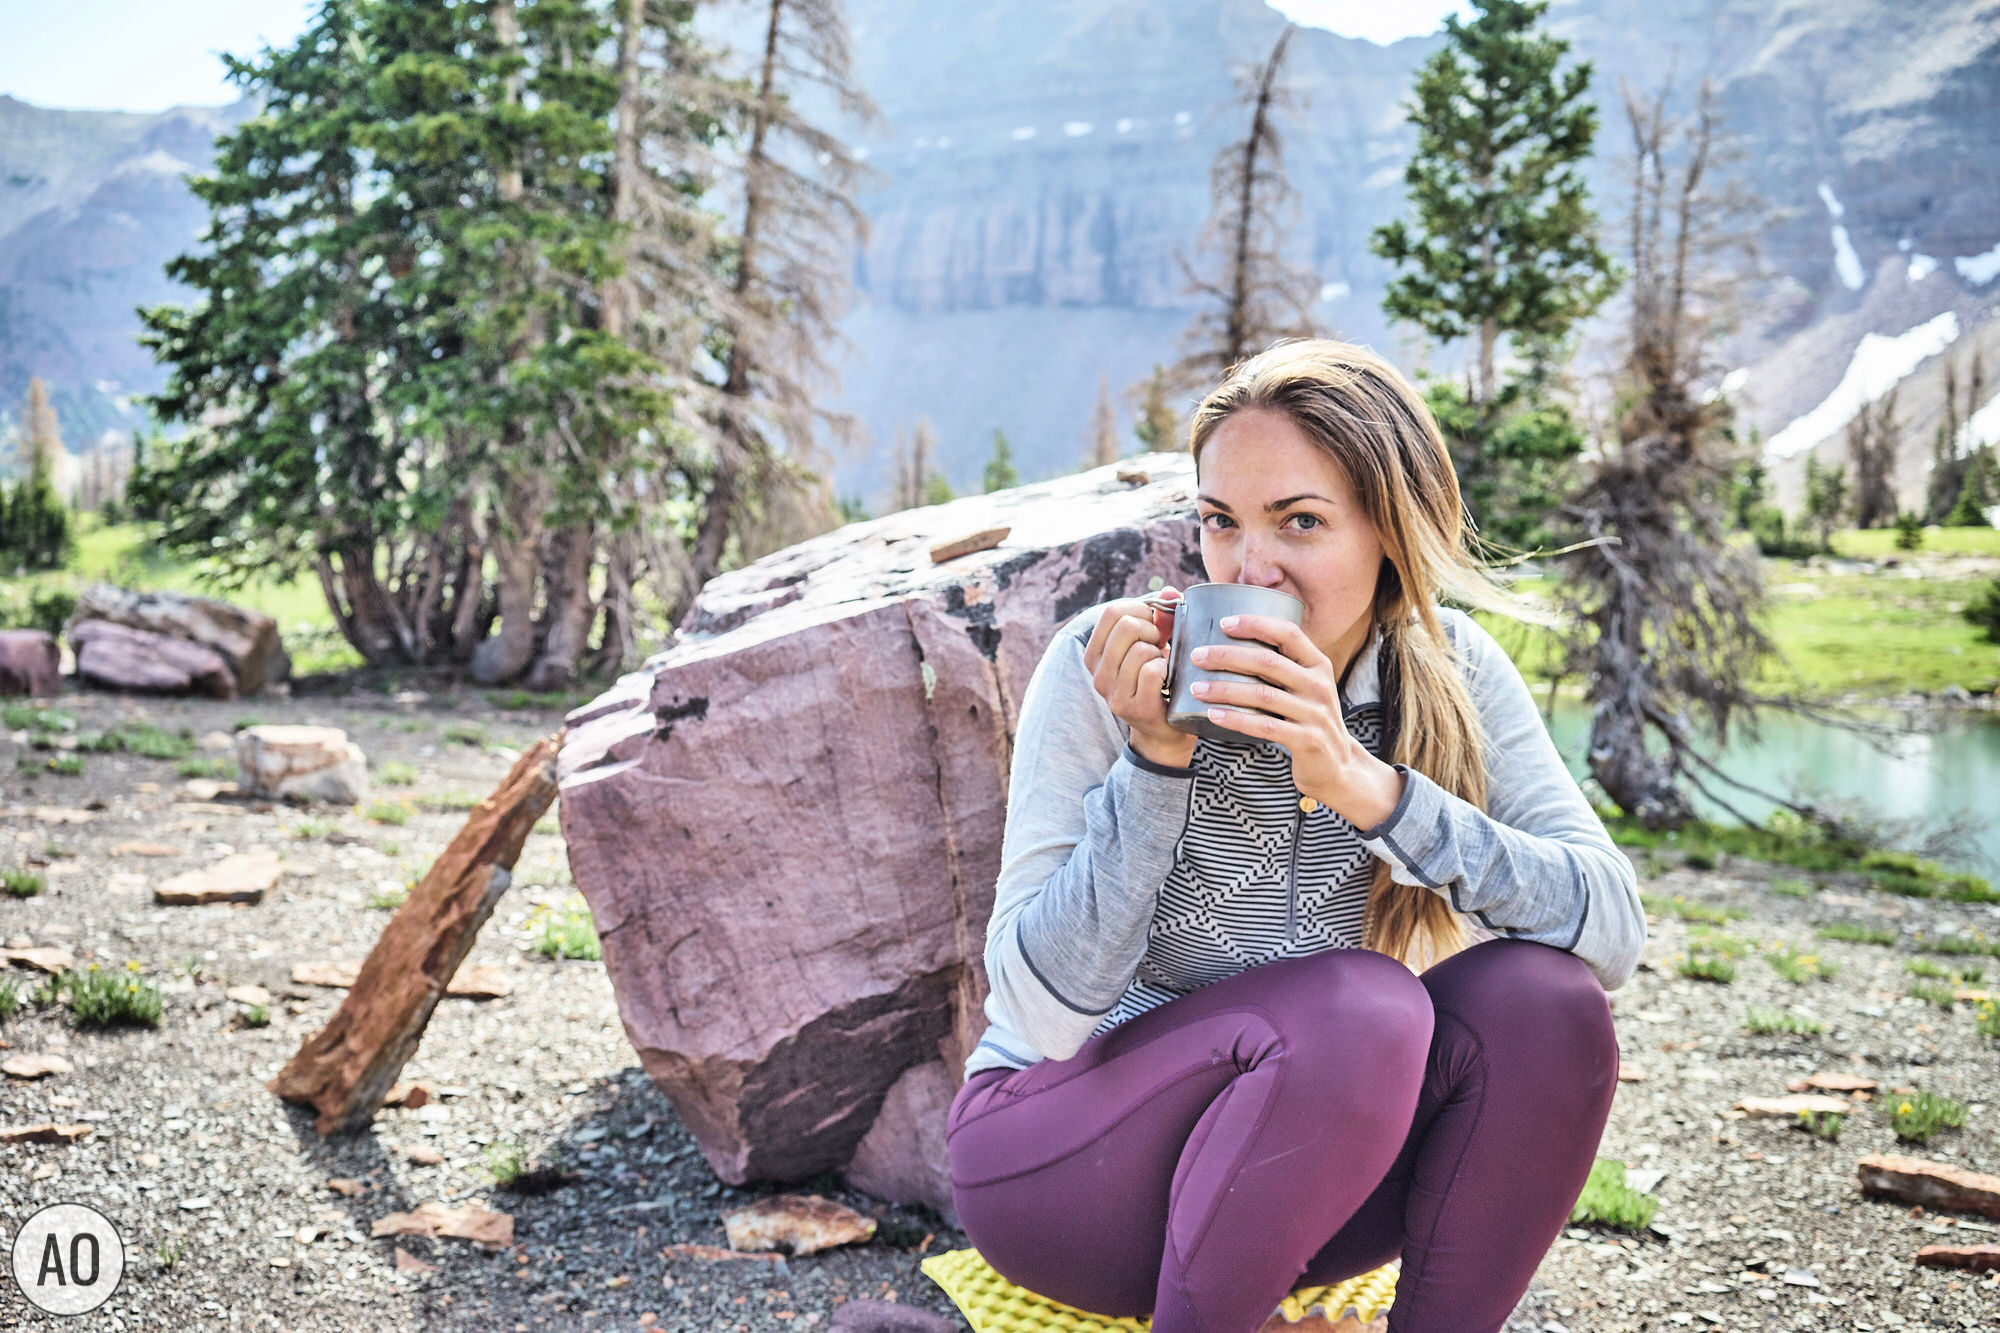 What is the best way to make backpacking coffee? Click through to learn 4 different methods of making coffee in the backcountry and the pros and cons of each! By www.amandaoutside.com - your source for backpacking tips and inspiration. #coffee #backpacking